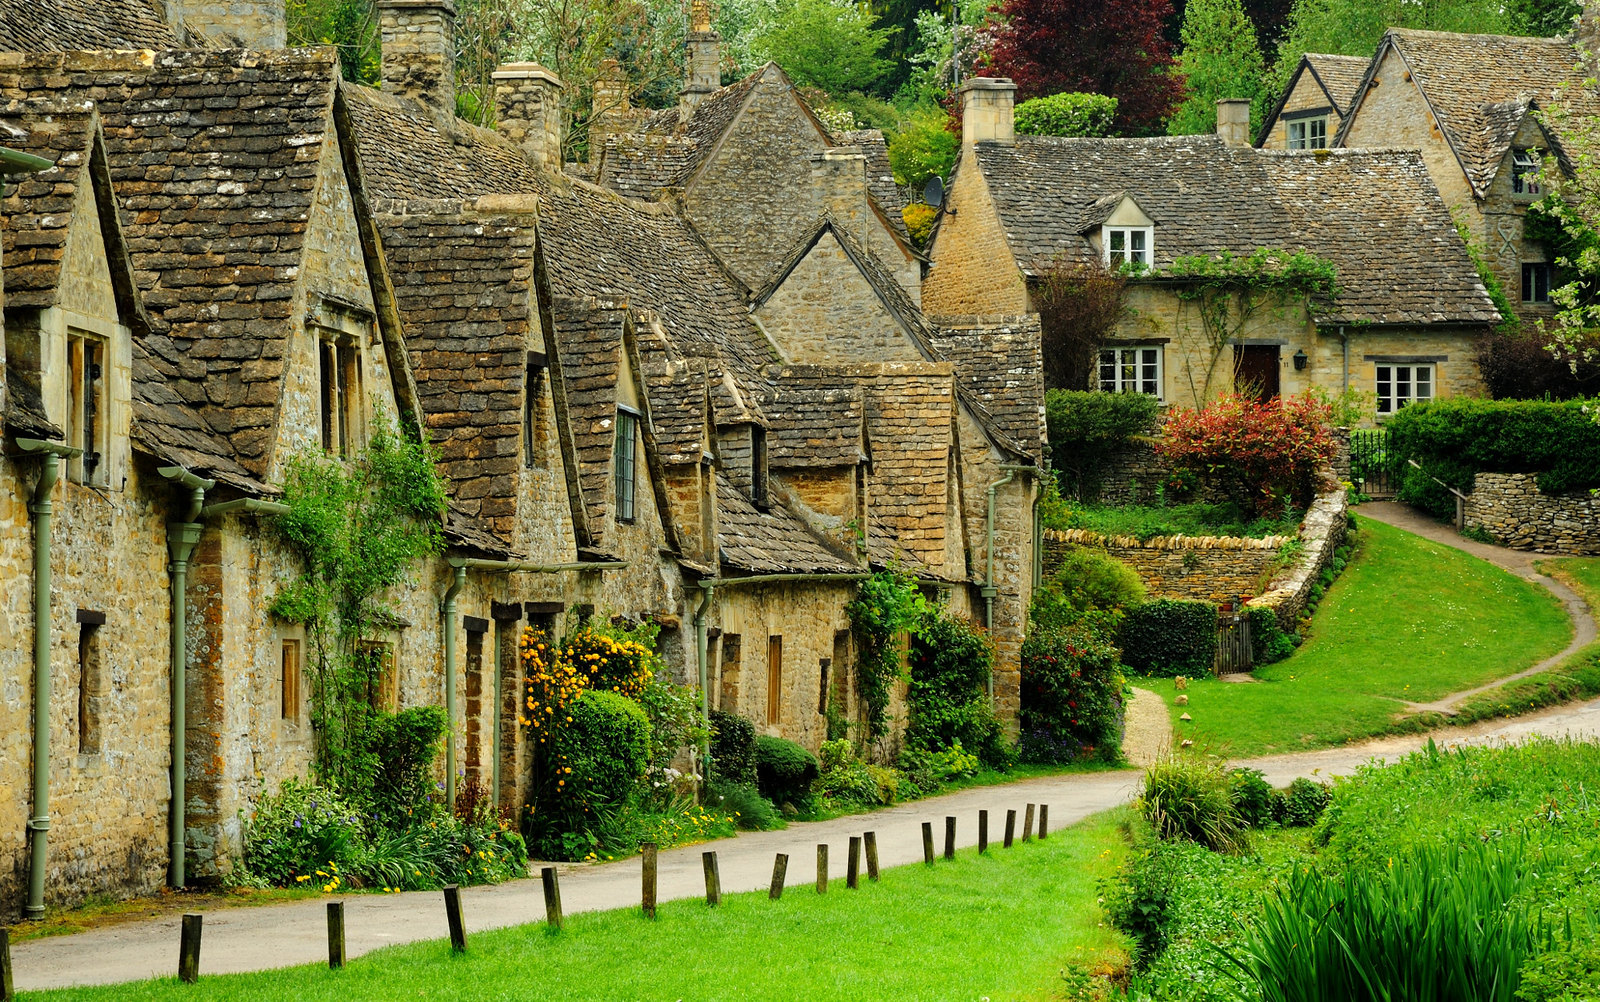 Arlington Row in Bibury, Gloucestershire was built in 1380 as a monastic wool store. The buildings were converted into weavers' cottages in the 17th century